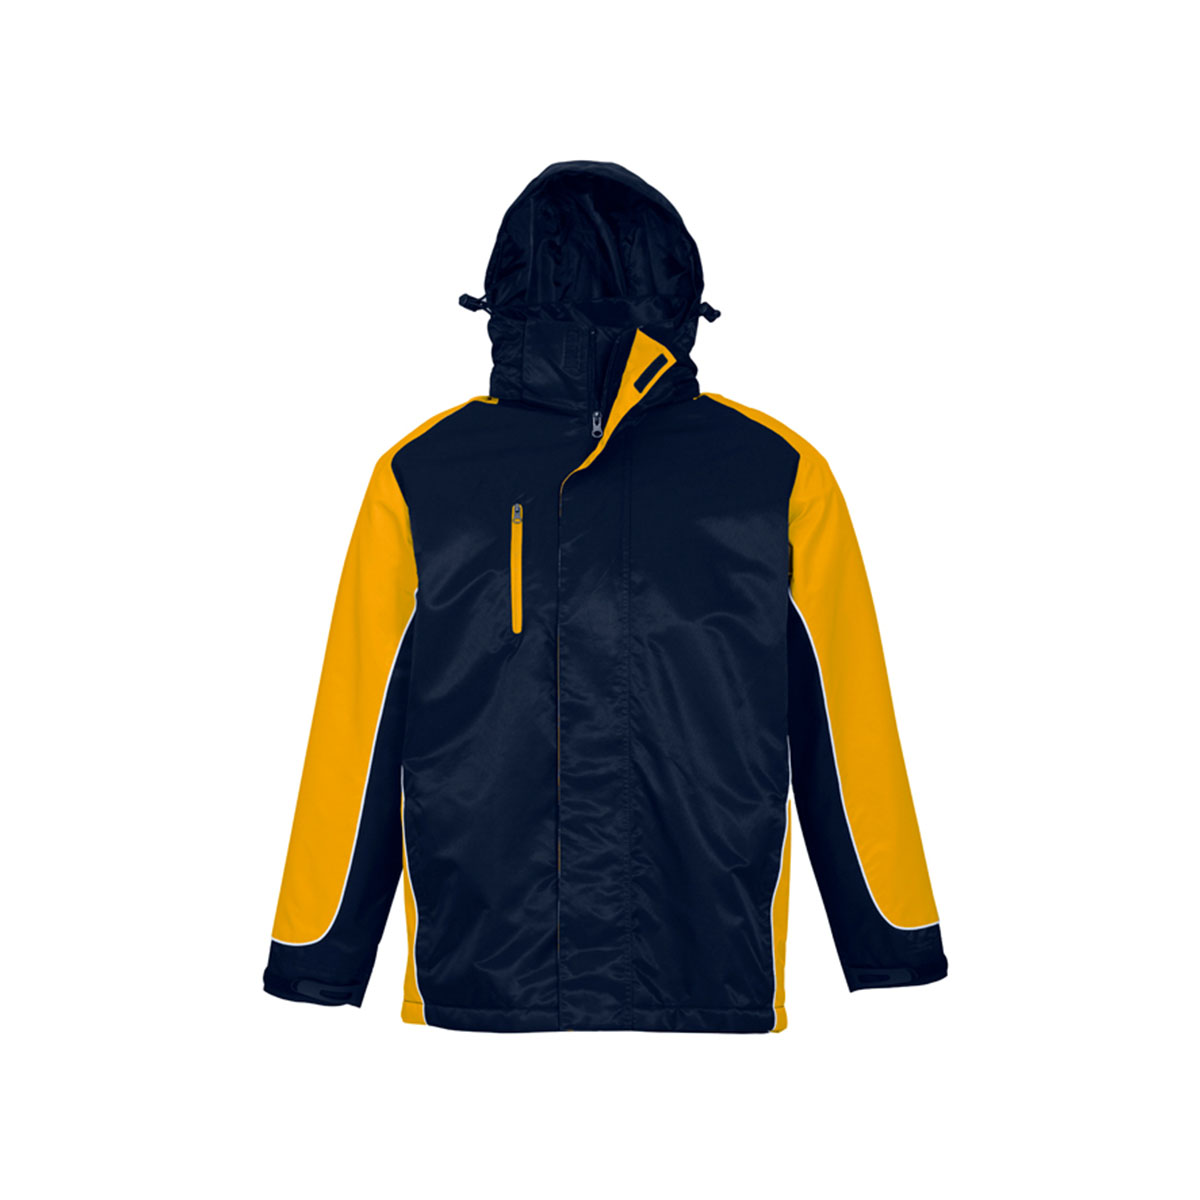 Unisex Nitro Jacket-Navy / Gold / White